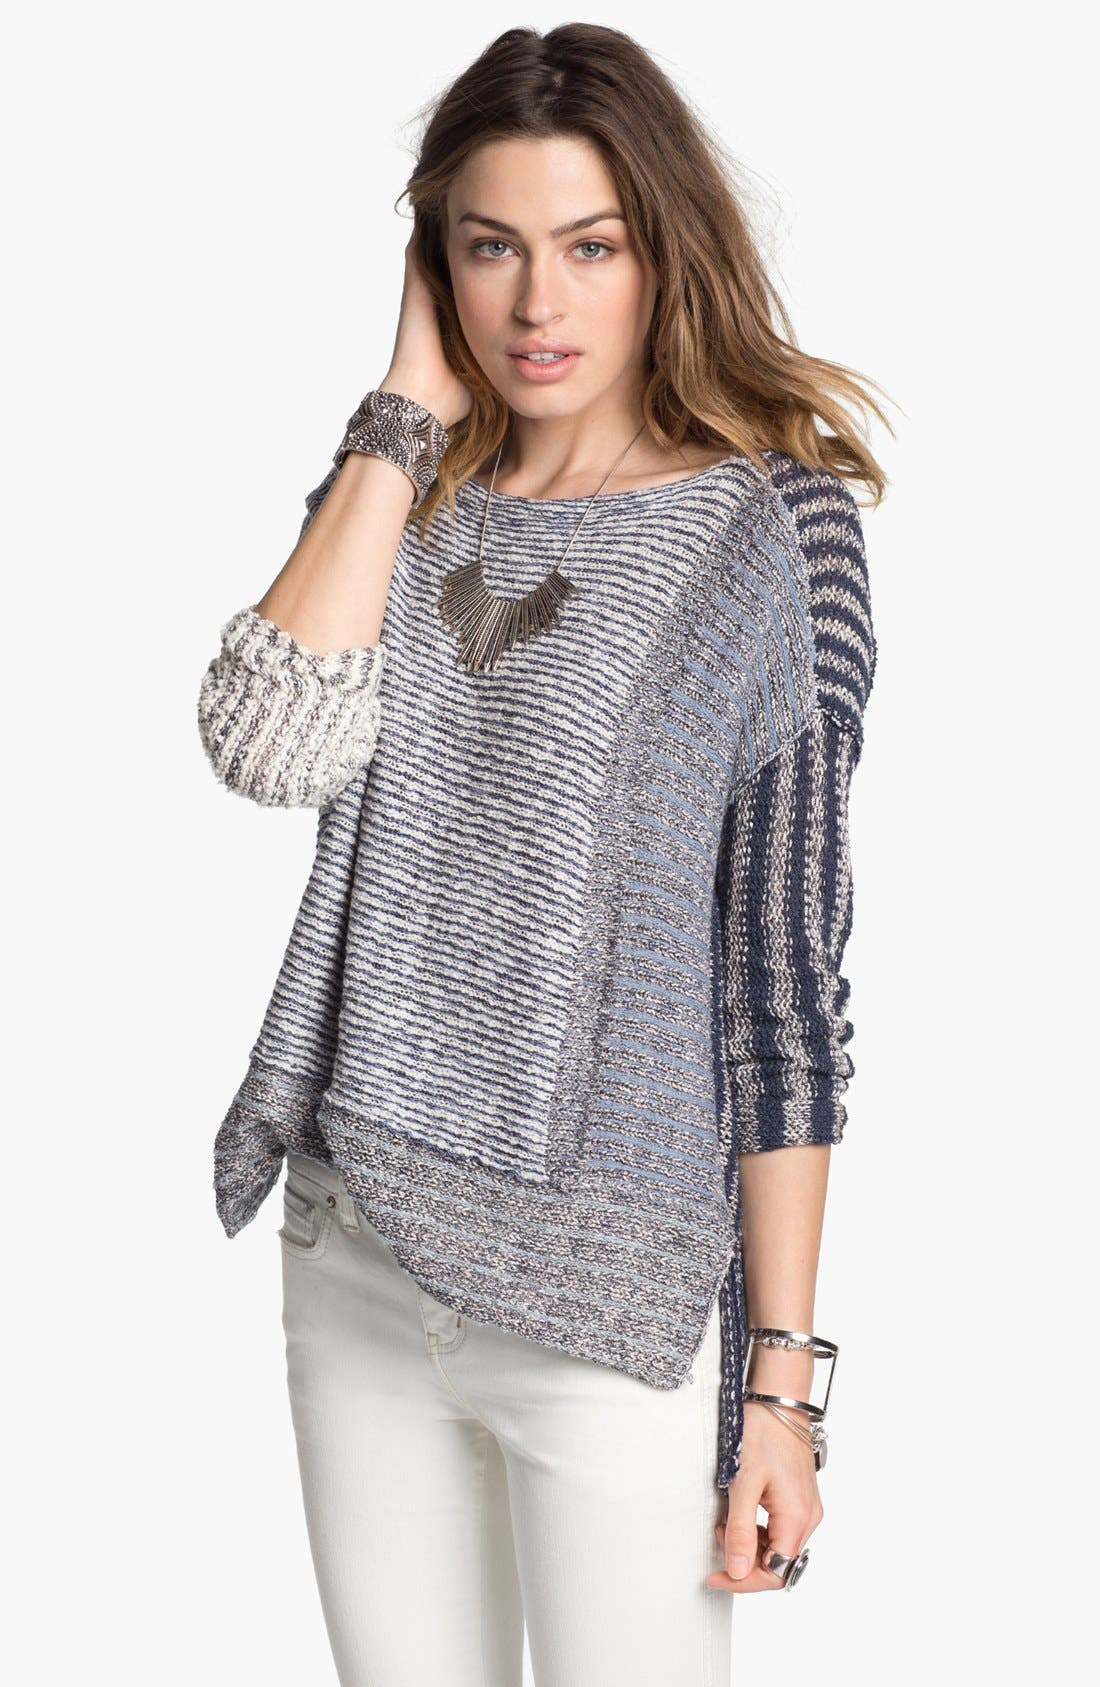 Alternate Image 1 Selected - Free People 'I'm Cool with Stripes' Sweater